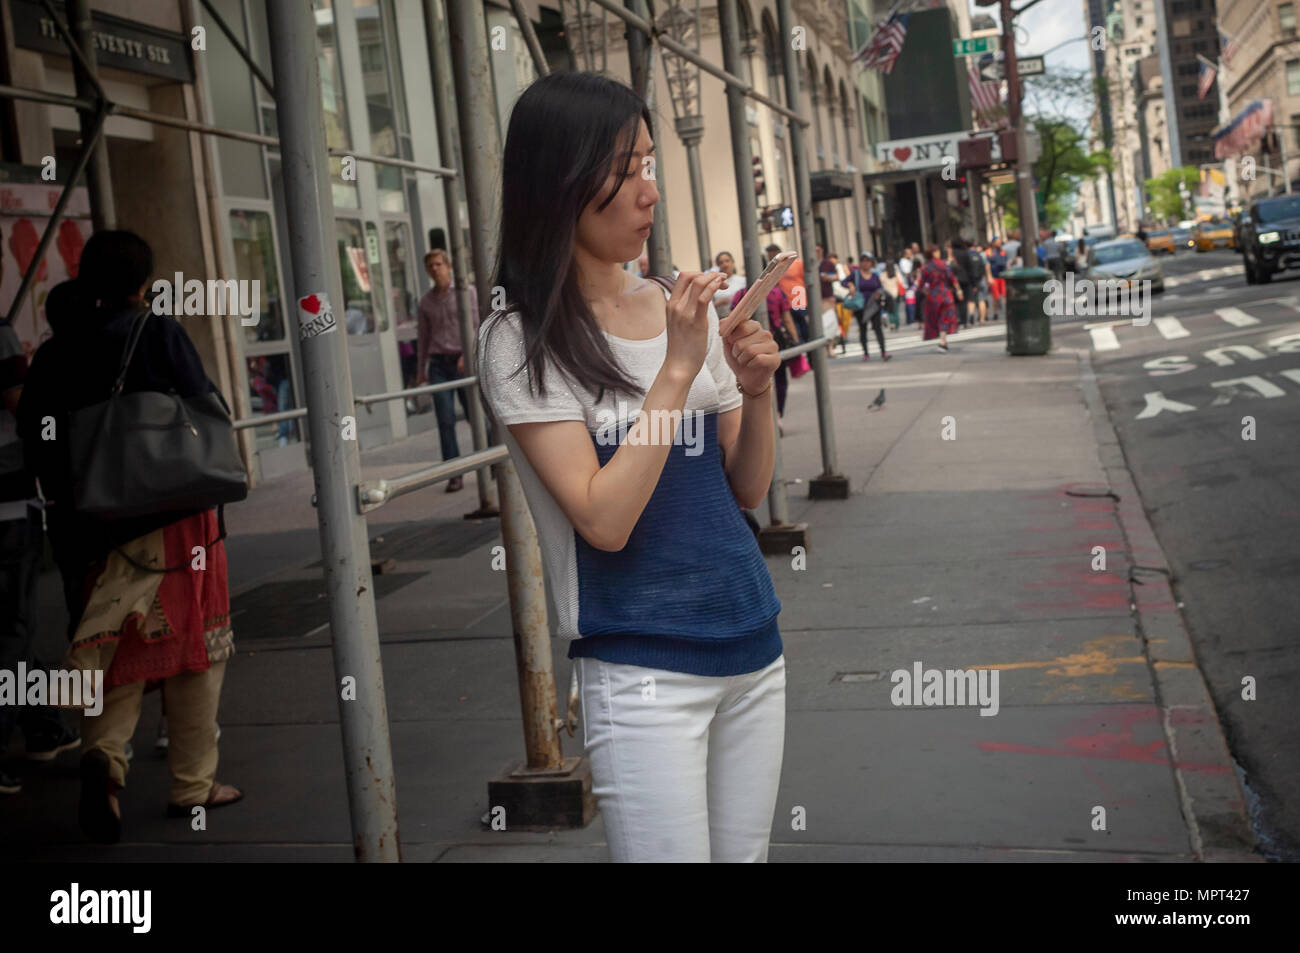 A distracted millennial, engrossed in her smartphone, waits for a bus on Fifth Avenue in New York on Sunday, May 20, 2018.  (© Richard B. Levine) - Stock Image